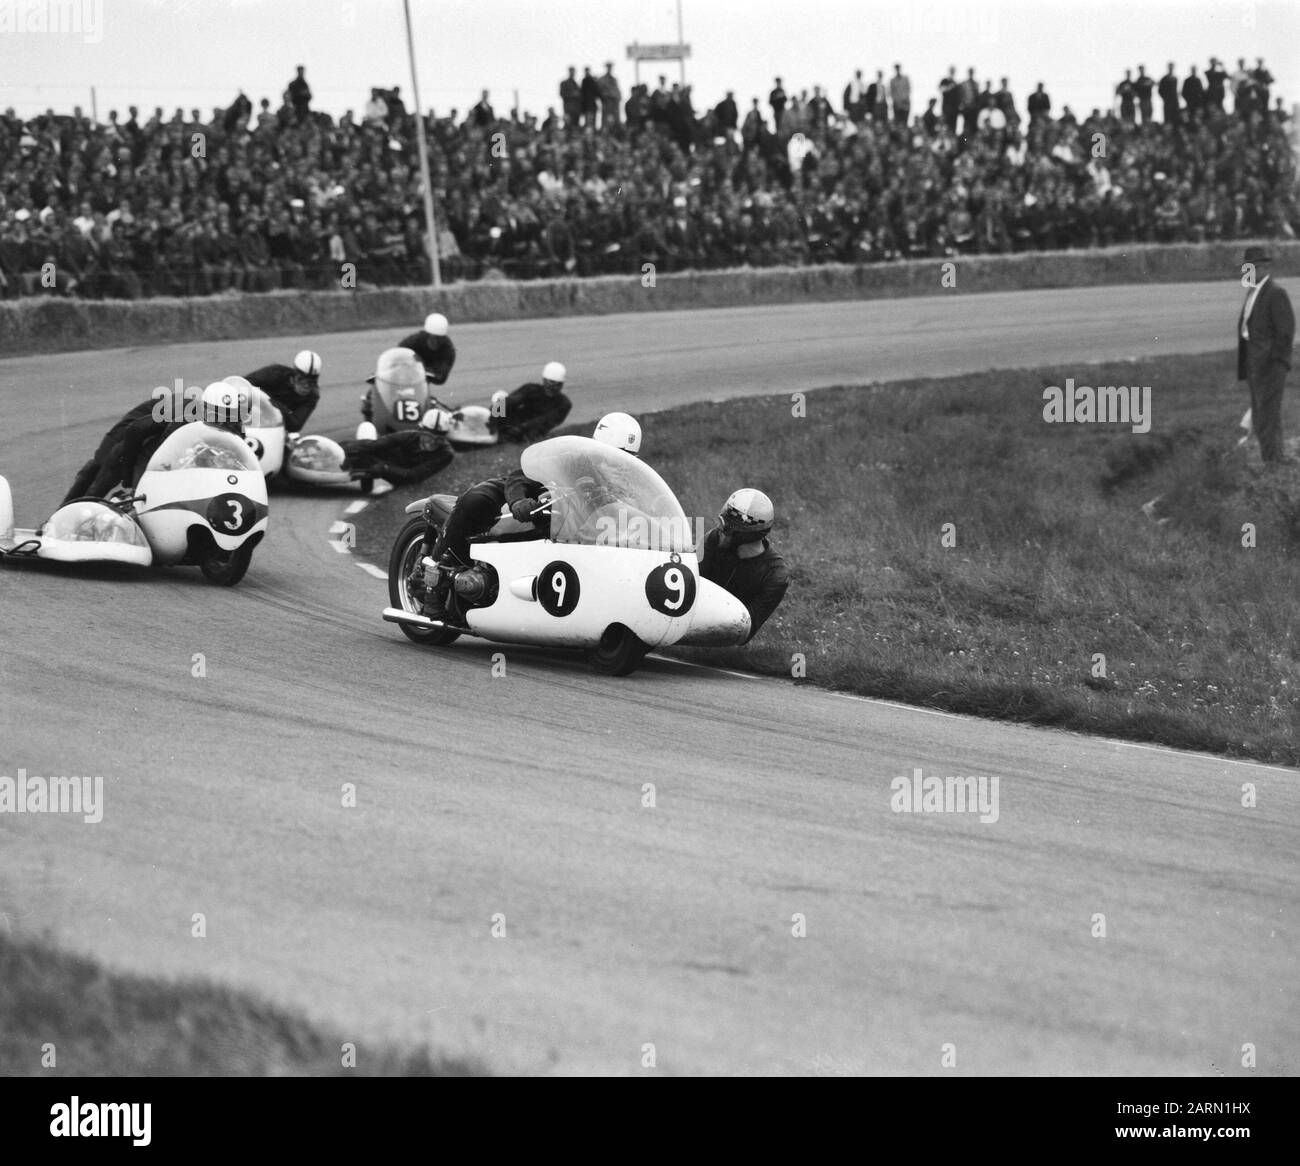 TT Assen 1963  TT to Assen. The sidecar class. Front number 9 Benton with Bulgin, number 3 Koelle with He number 13 A. Birch with Q. Birch Date: 29 June 1963 Location: Axis Keywords: motorcycles, motorsport, races Personal name: A. Birch, Hess, Q. Birch Institution name: TT Stock Photo